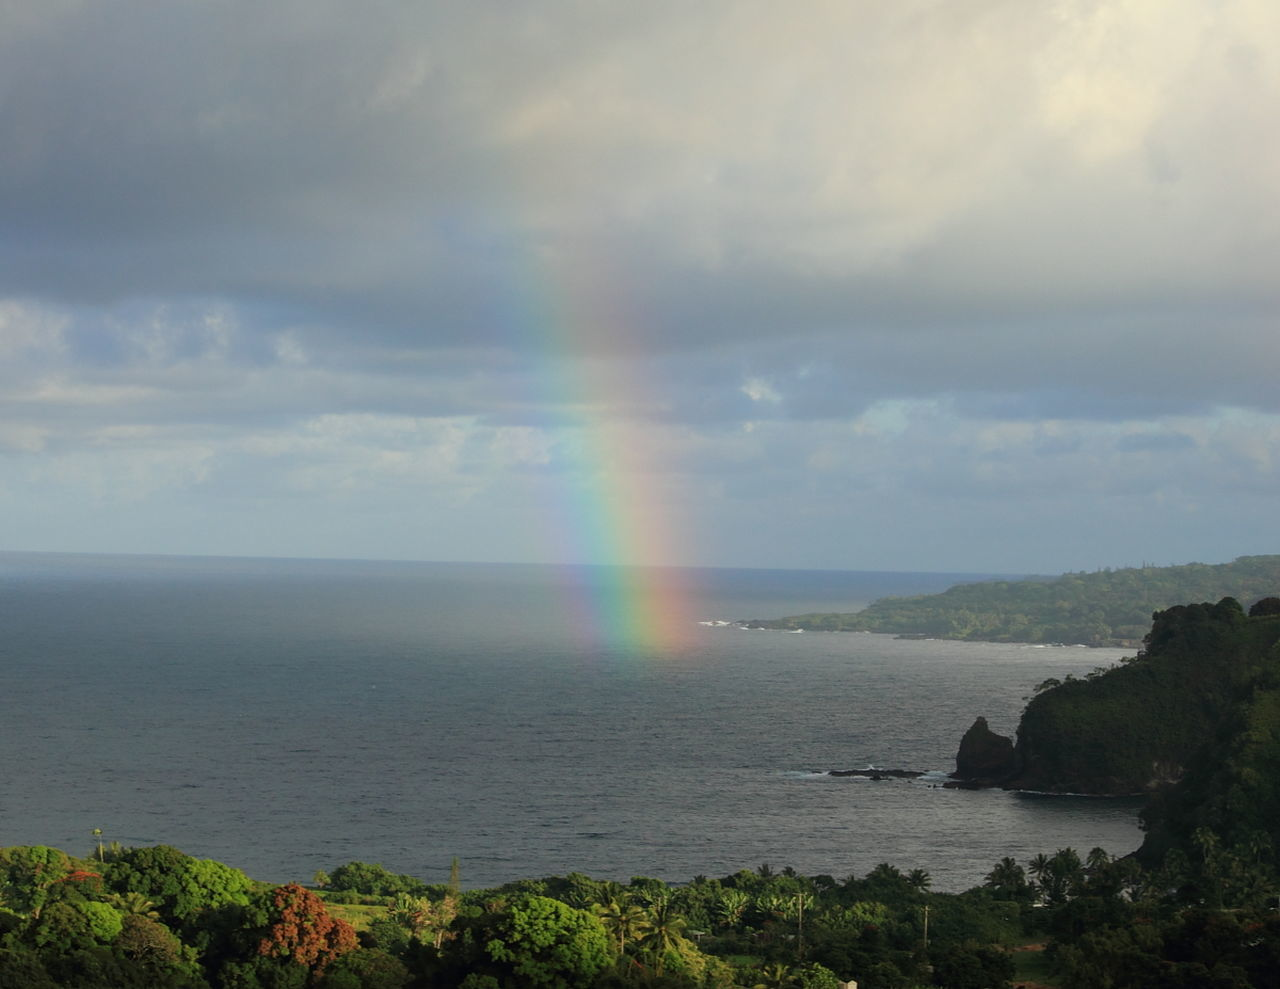 rainbow, double rainbow, scenics, beauty in nature, nature, water, cloud - sky, sky, idyllic, outdoors, tranquil scene, day, tranquility, sea, no people, multi colored, horizon over water, spectrum